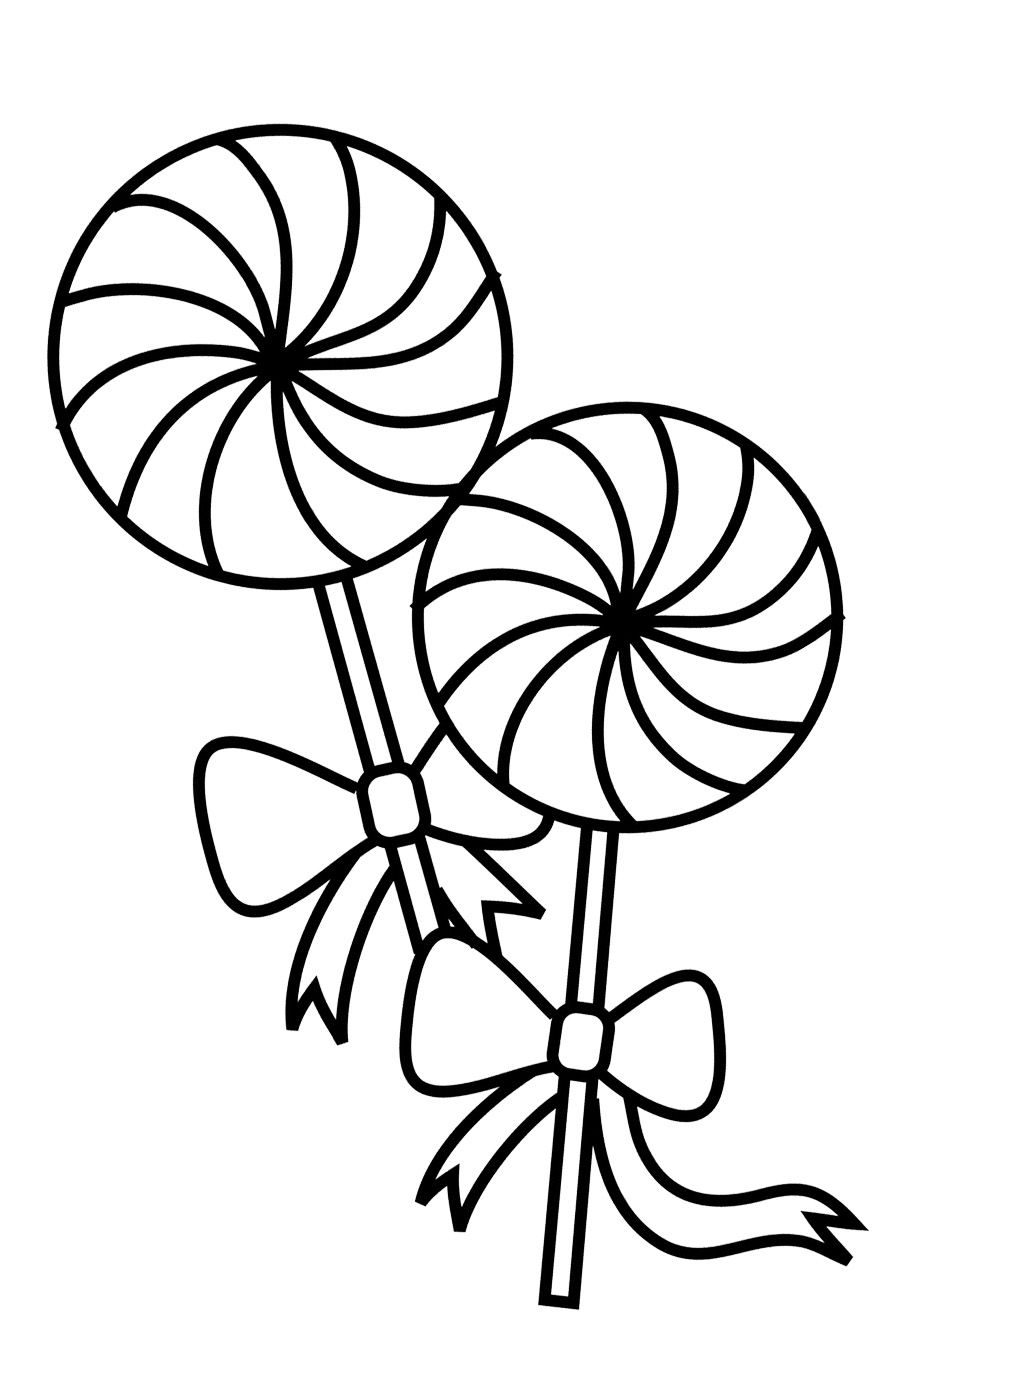 Two Lollipop Coloring Page | Cookie | Pinterest | Para el hogar ...